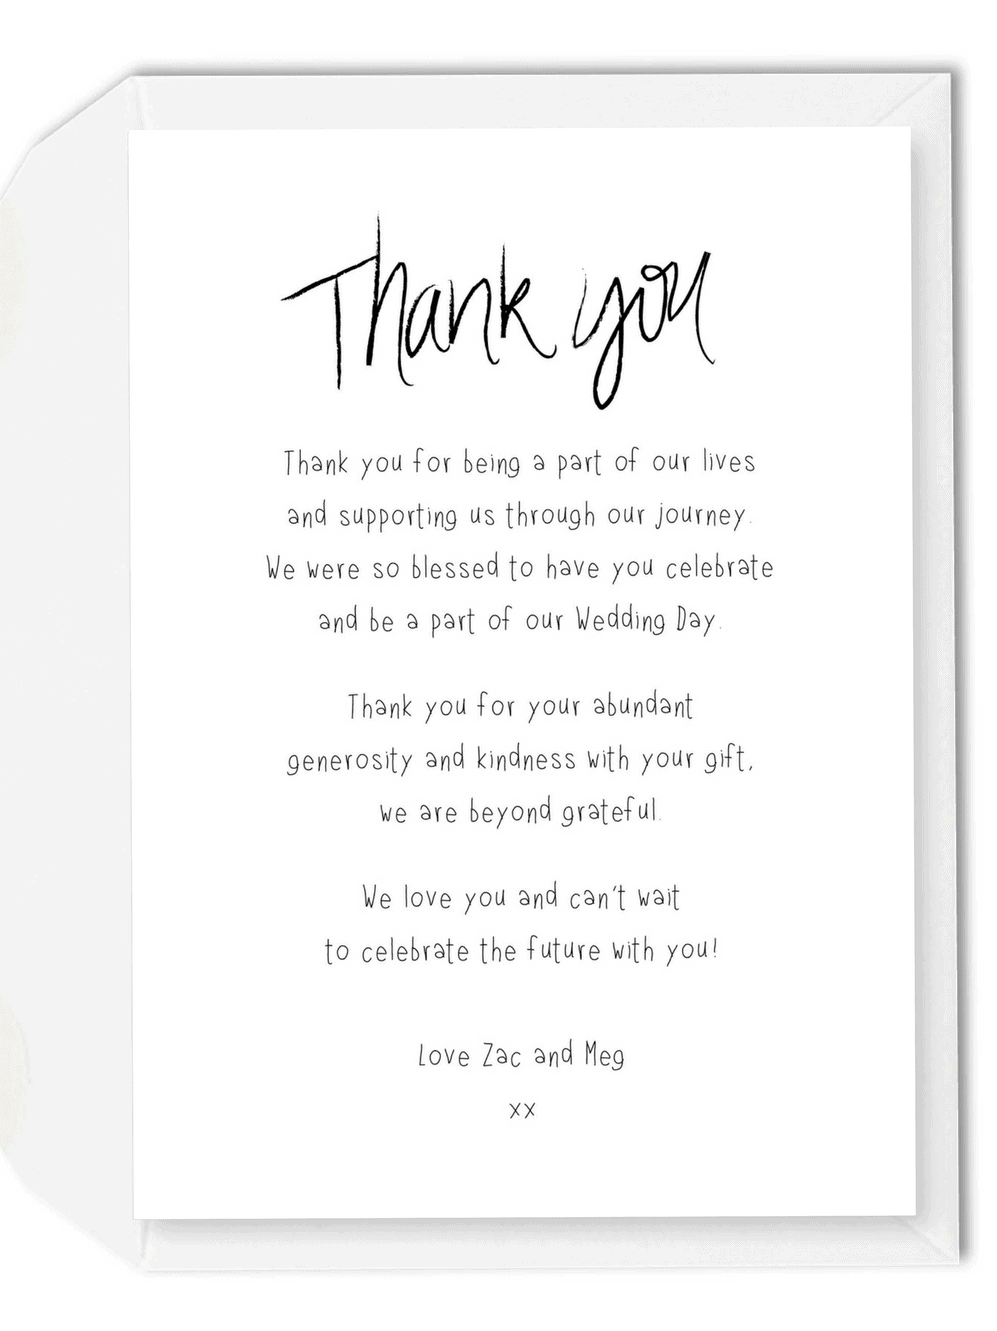 Wedding Thank You Card Wording Ideas 2